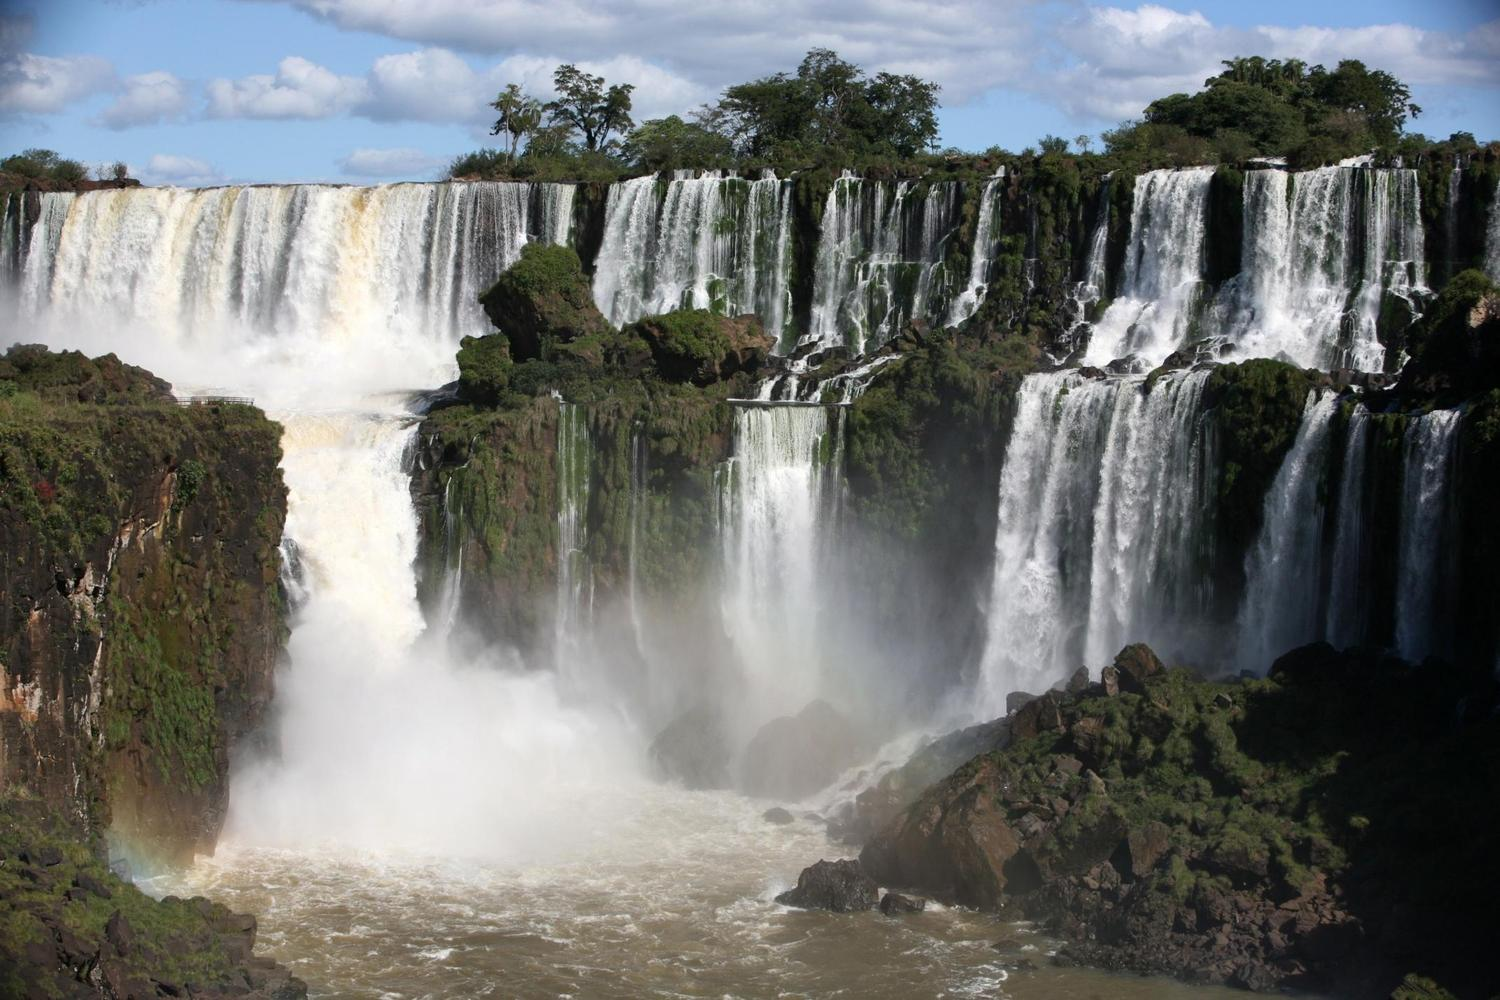 Views of the Argentine side of the Iguassu Falls